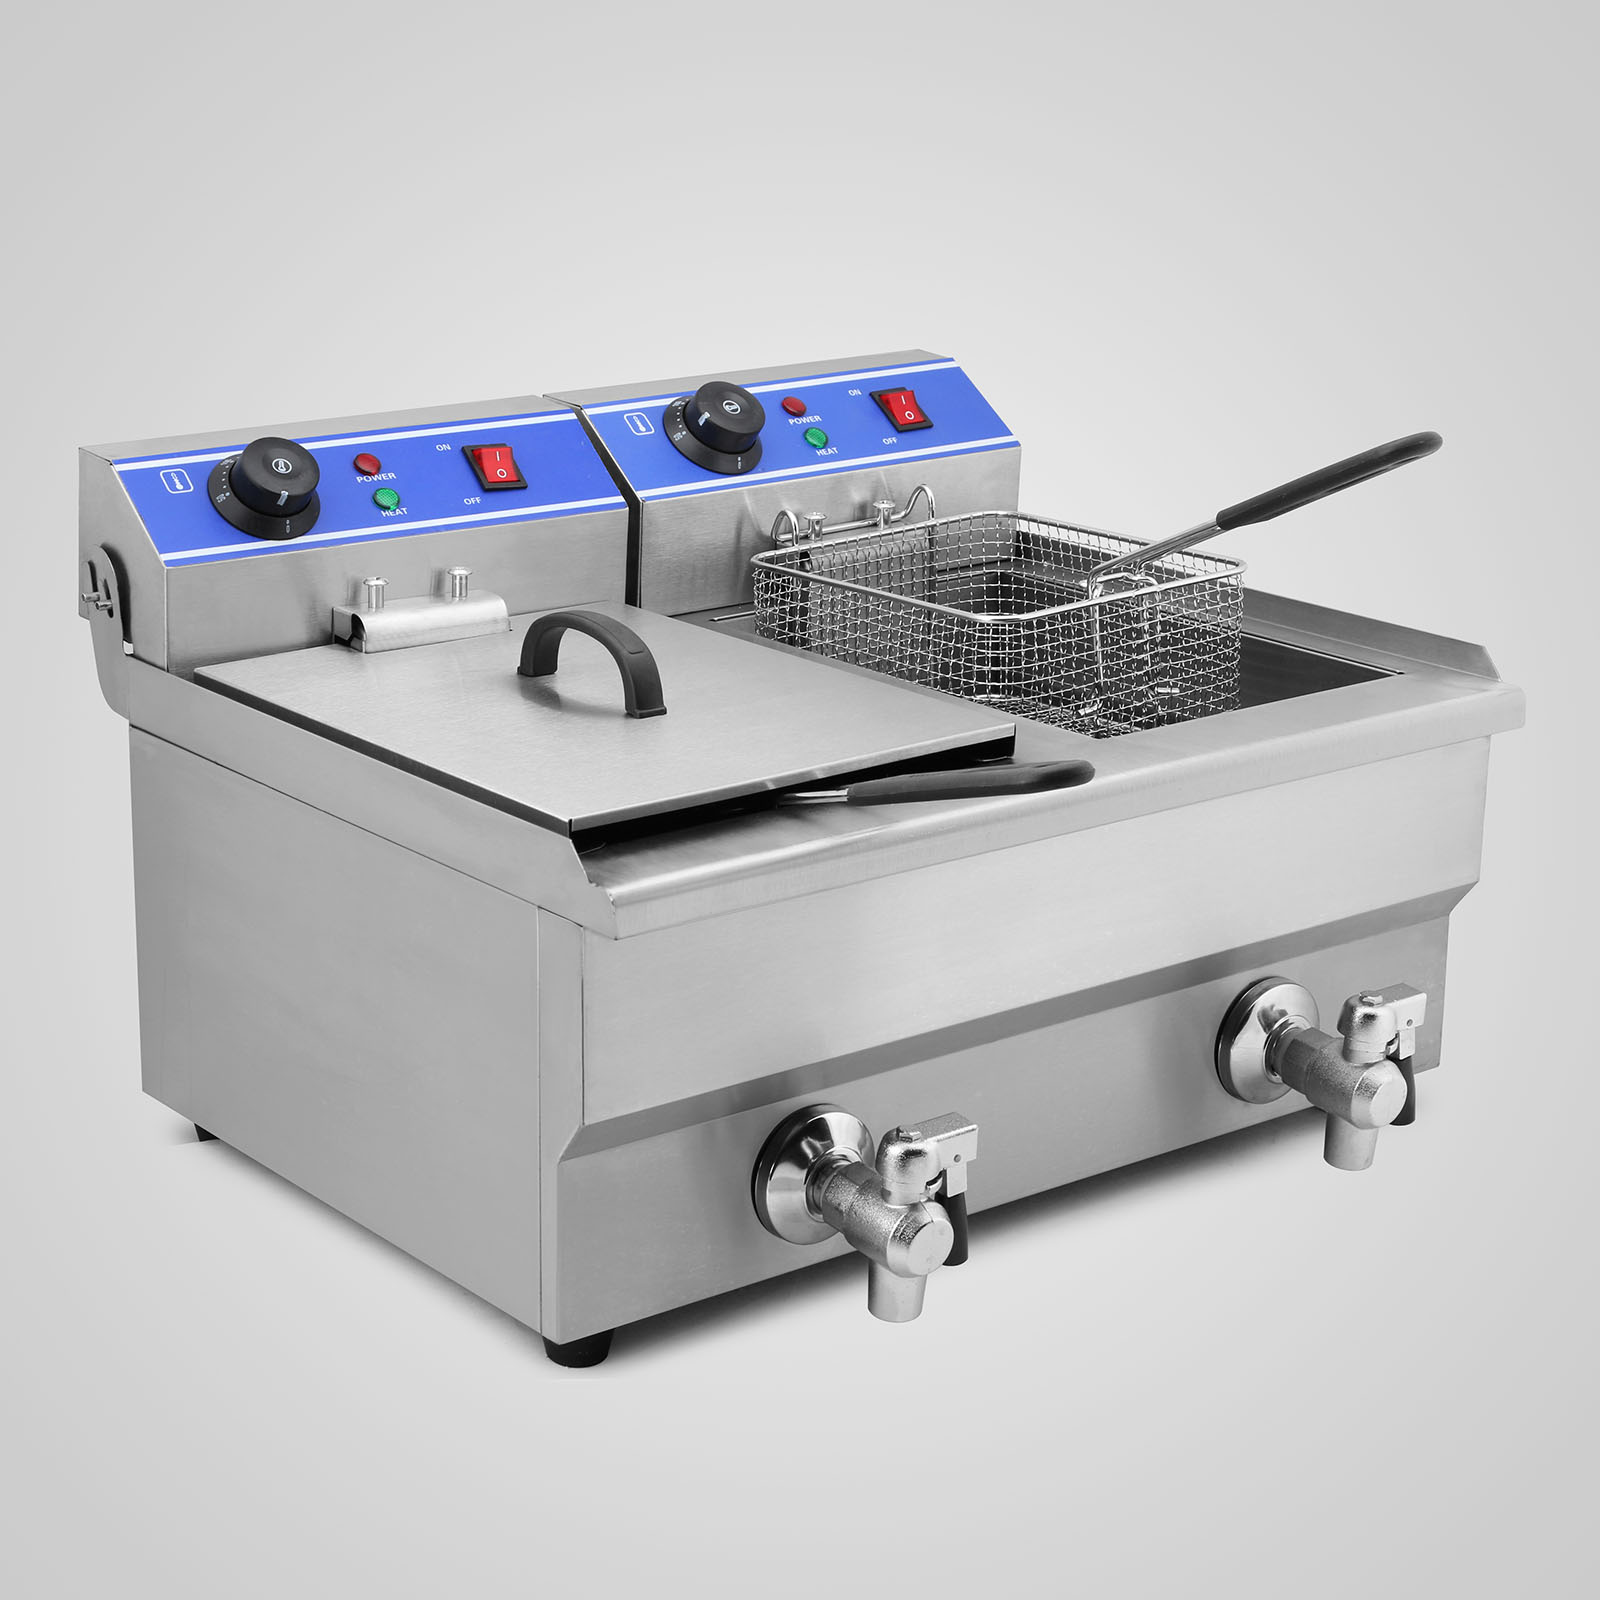 Details about 20L ELECTRIC DEEP FRYER DOUBLE TANK COUNTERTOP AUTO ...